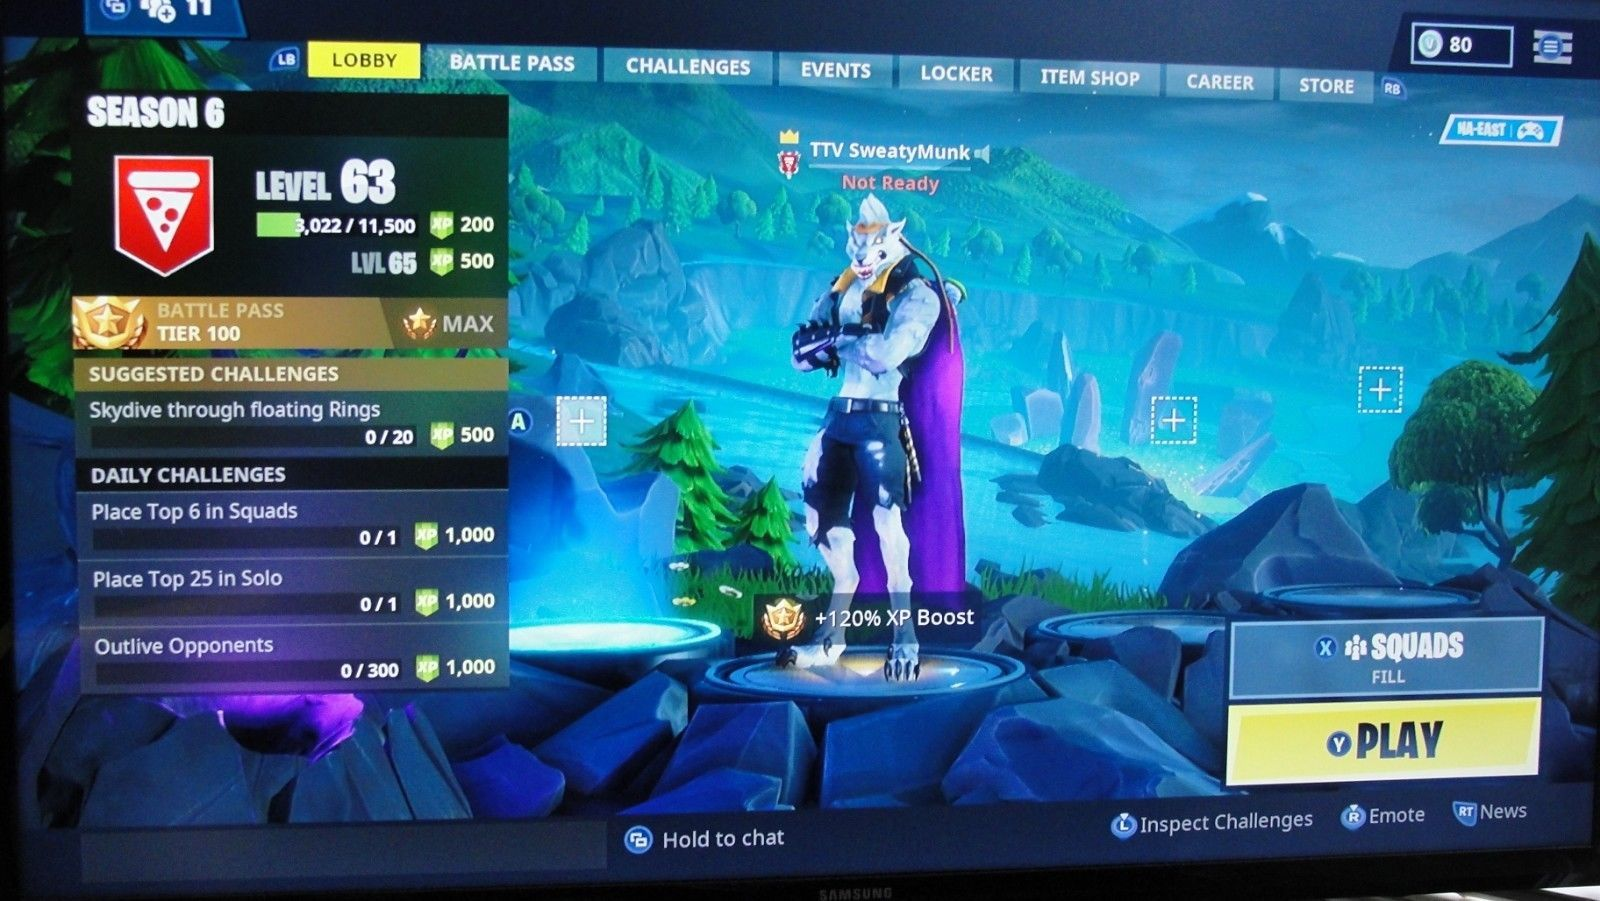 Fortnite Account With 50 Skins We Sell Fortnite Accounts And Loot